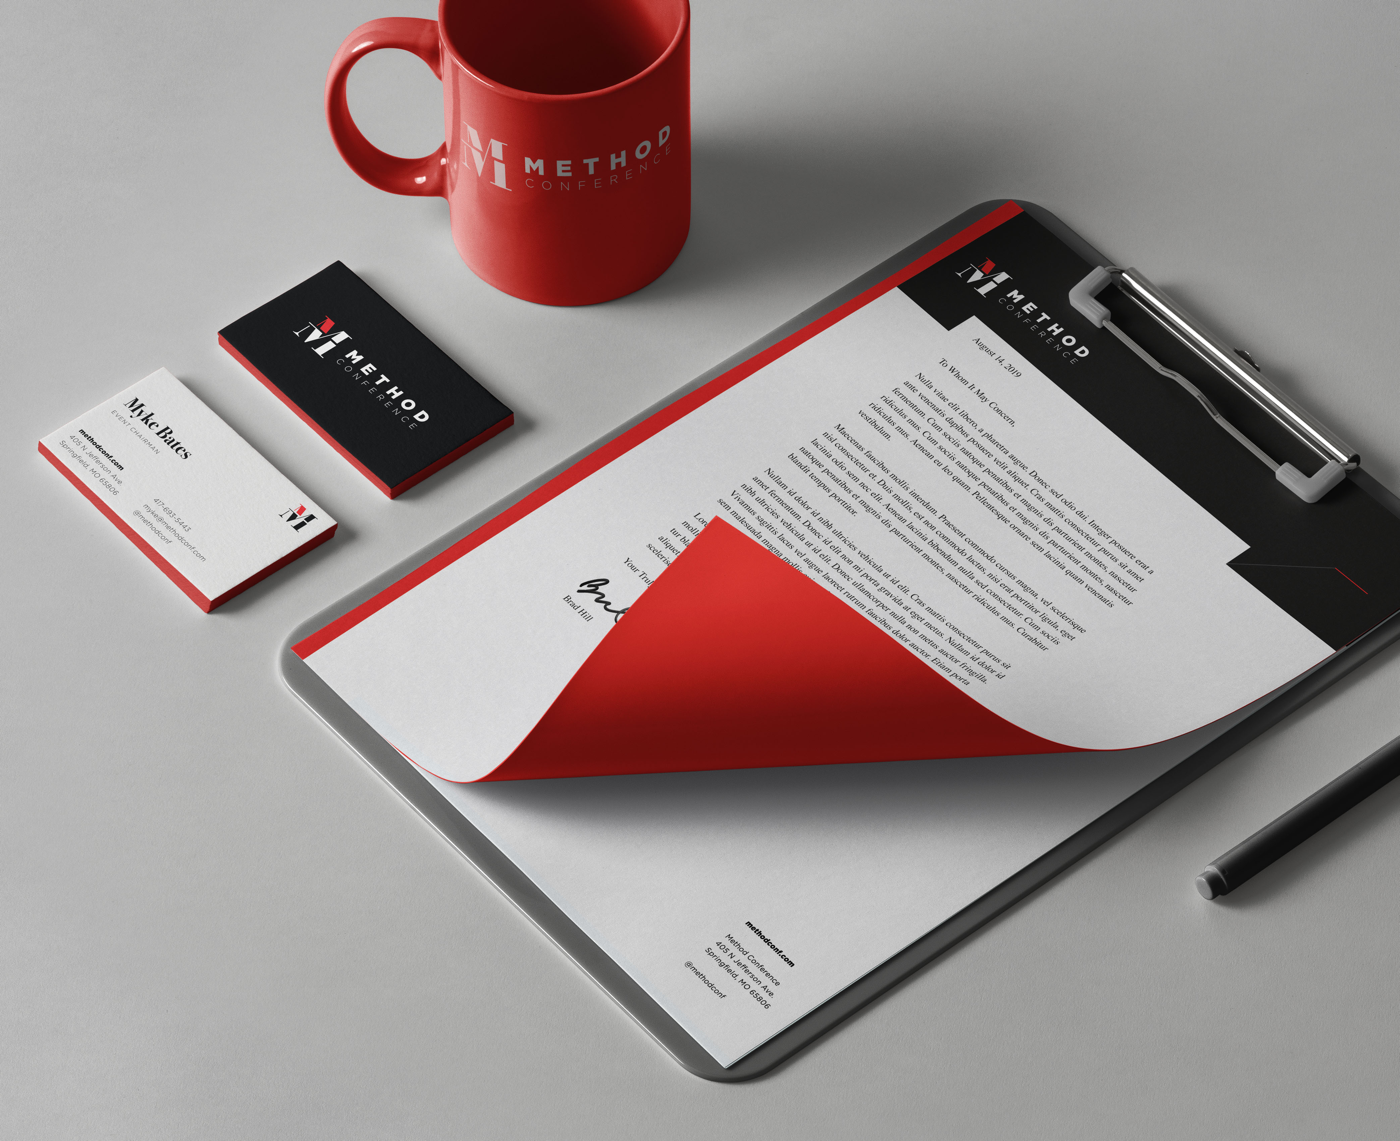 Method-Stationery-Branding-Mockup@1x